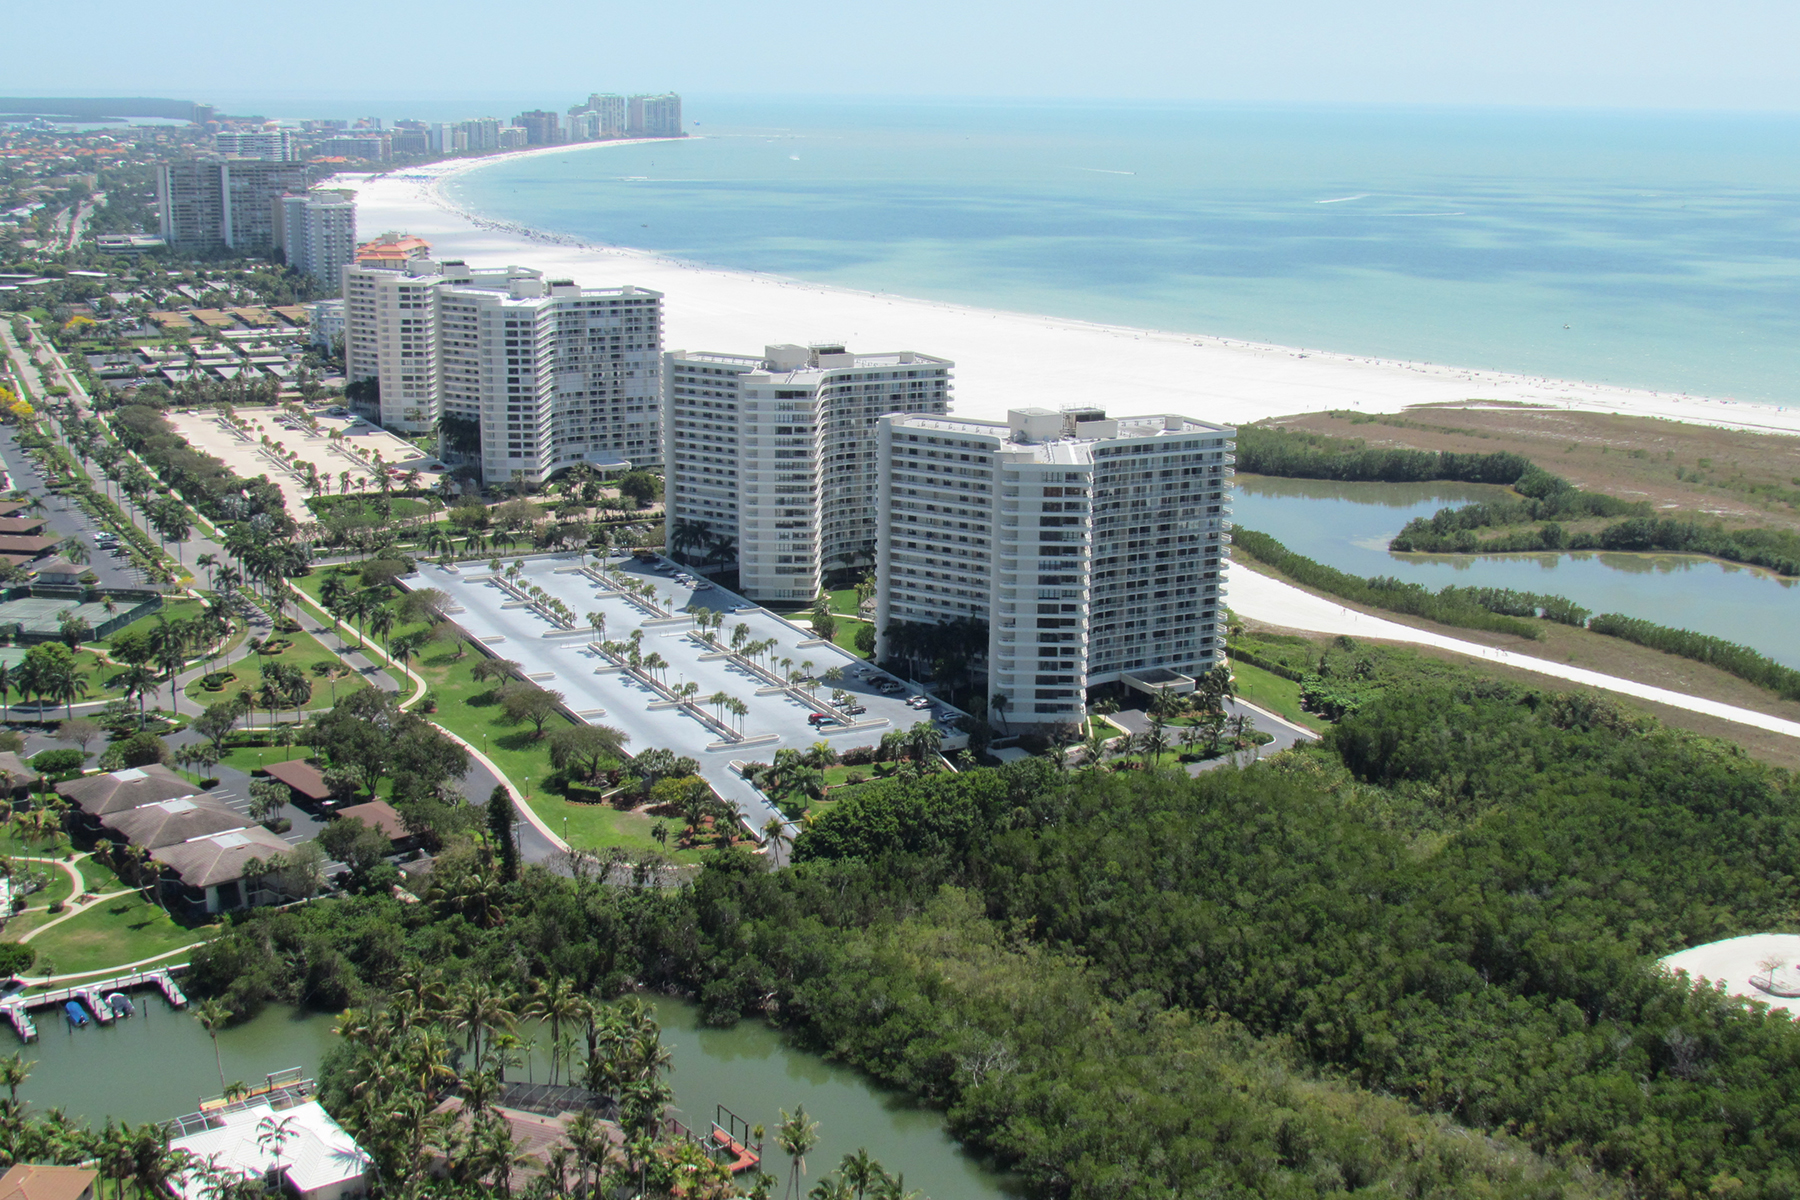 Condomínio para Venda às MARCO ISLAND - SOUTH SEAS 440 Seaview Ct 601 Marco Island, Florida, 34145 Estados Unidos